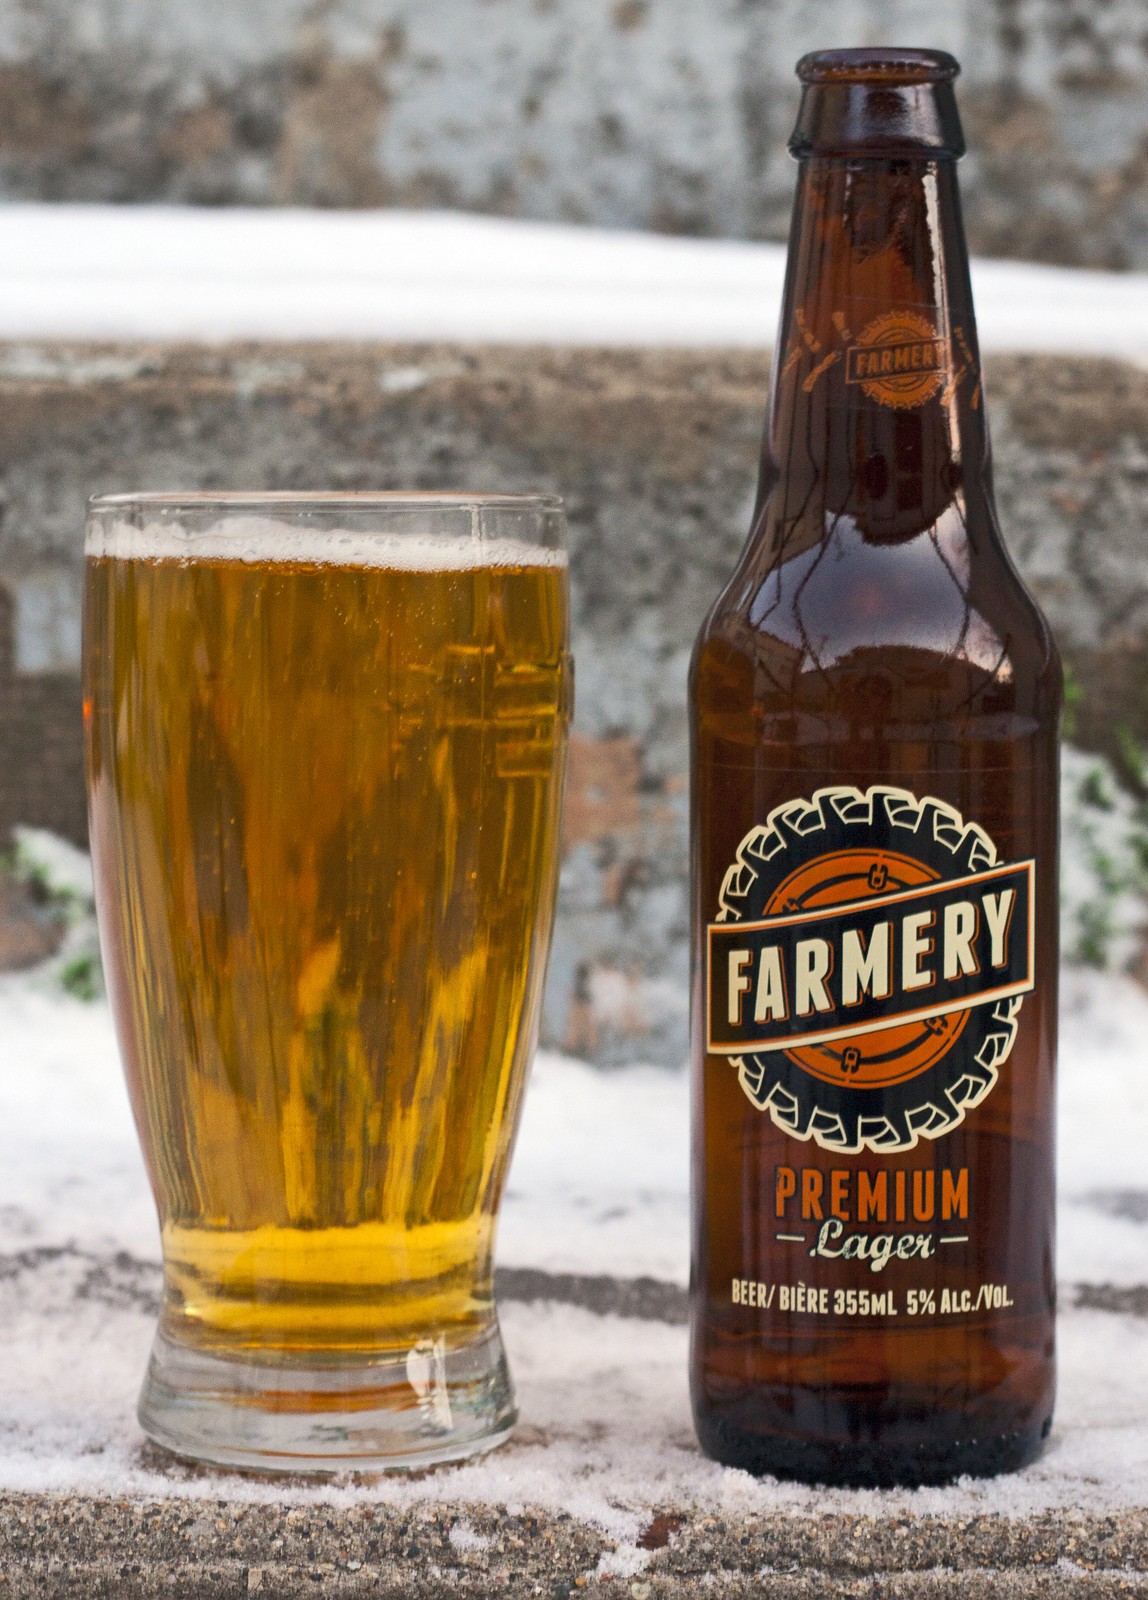 Review: Farmery Premium Lager by Cody La Bière